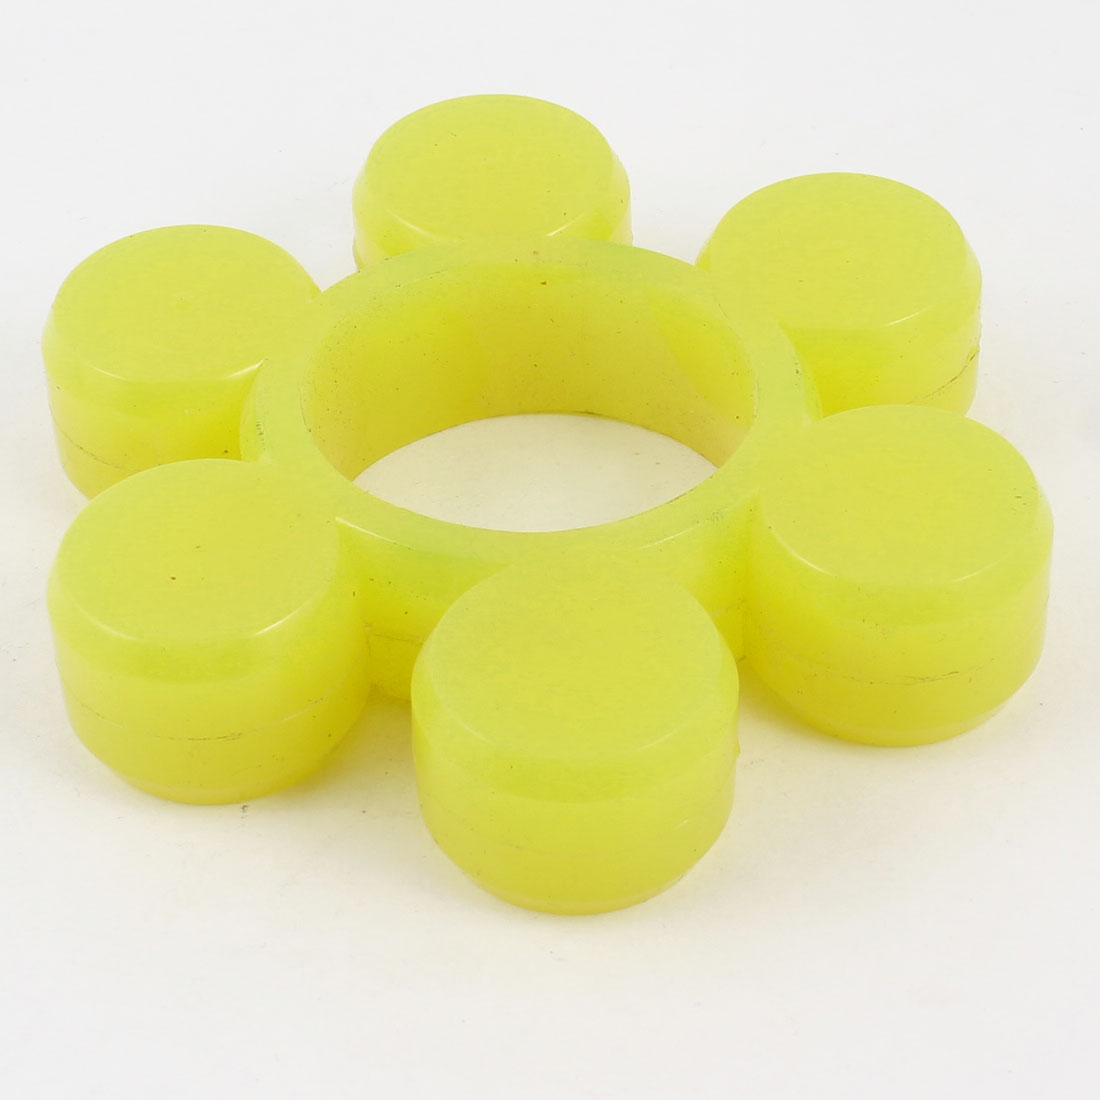 98mm x 20mm 6 Cylinder Petal Drive Shaft Rubber Coupler Damper Yellow